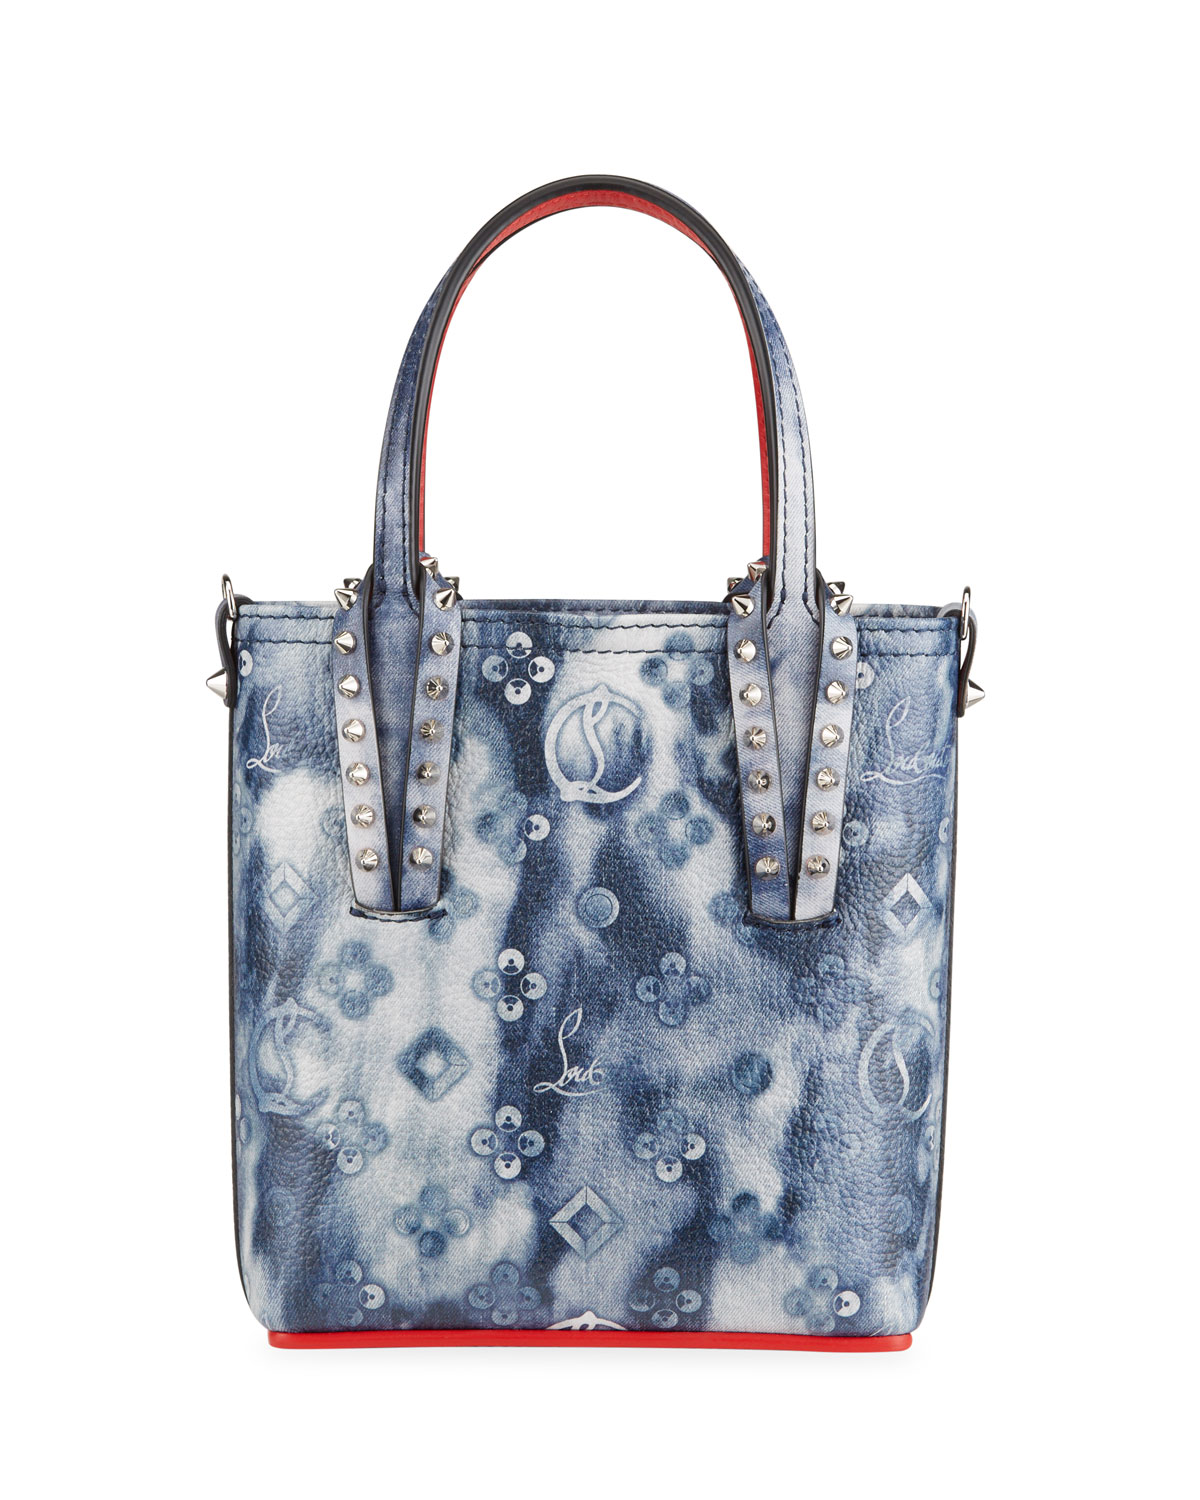 Christian Louboutin CABATA TIE-DYE NORTH-SOUTH MINI CROSSBODY BAG W/ EMPIRE PUNK SPIKES